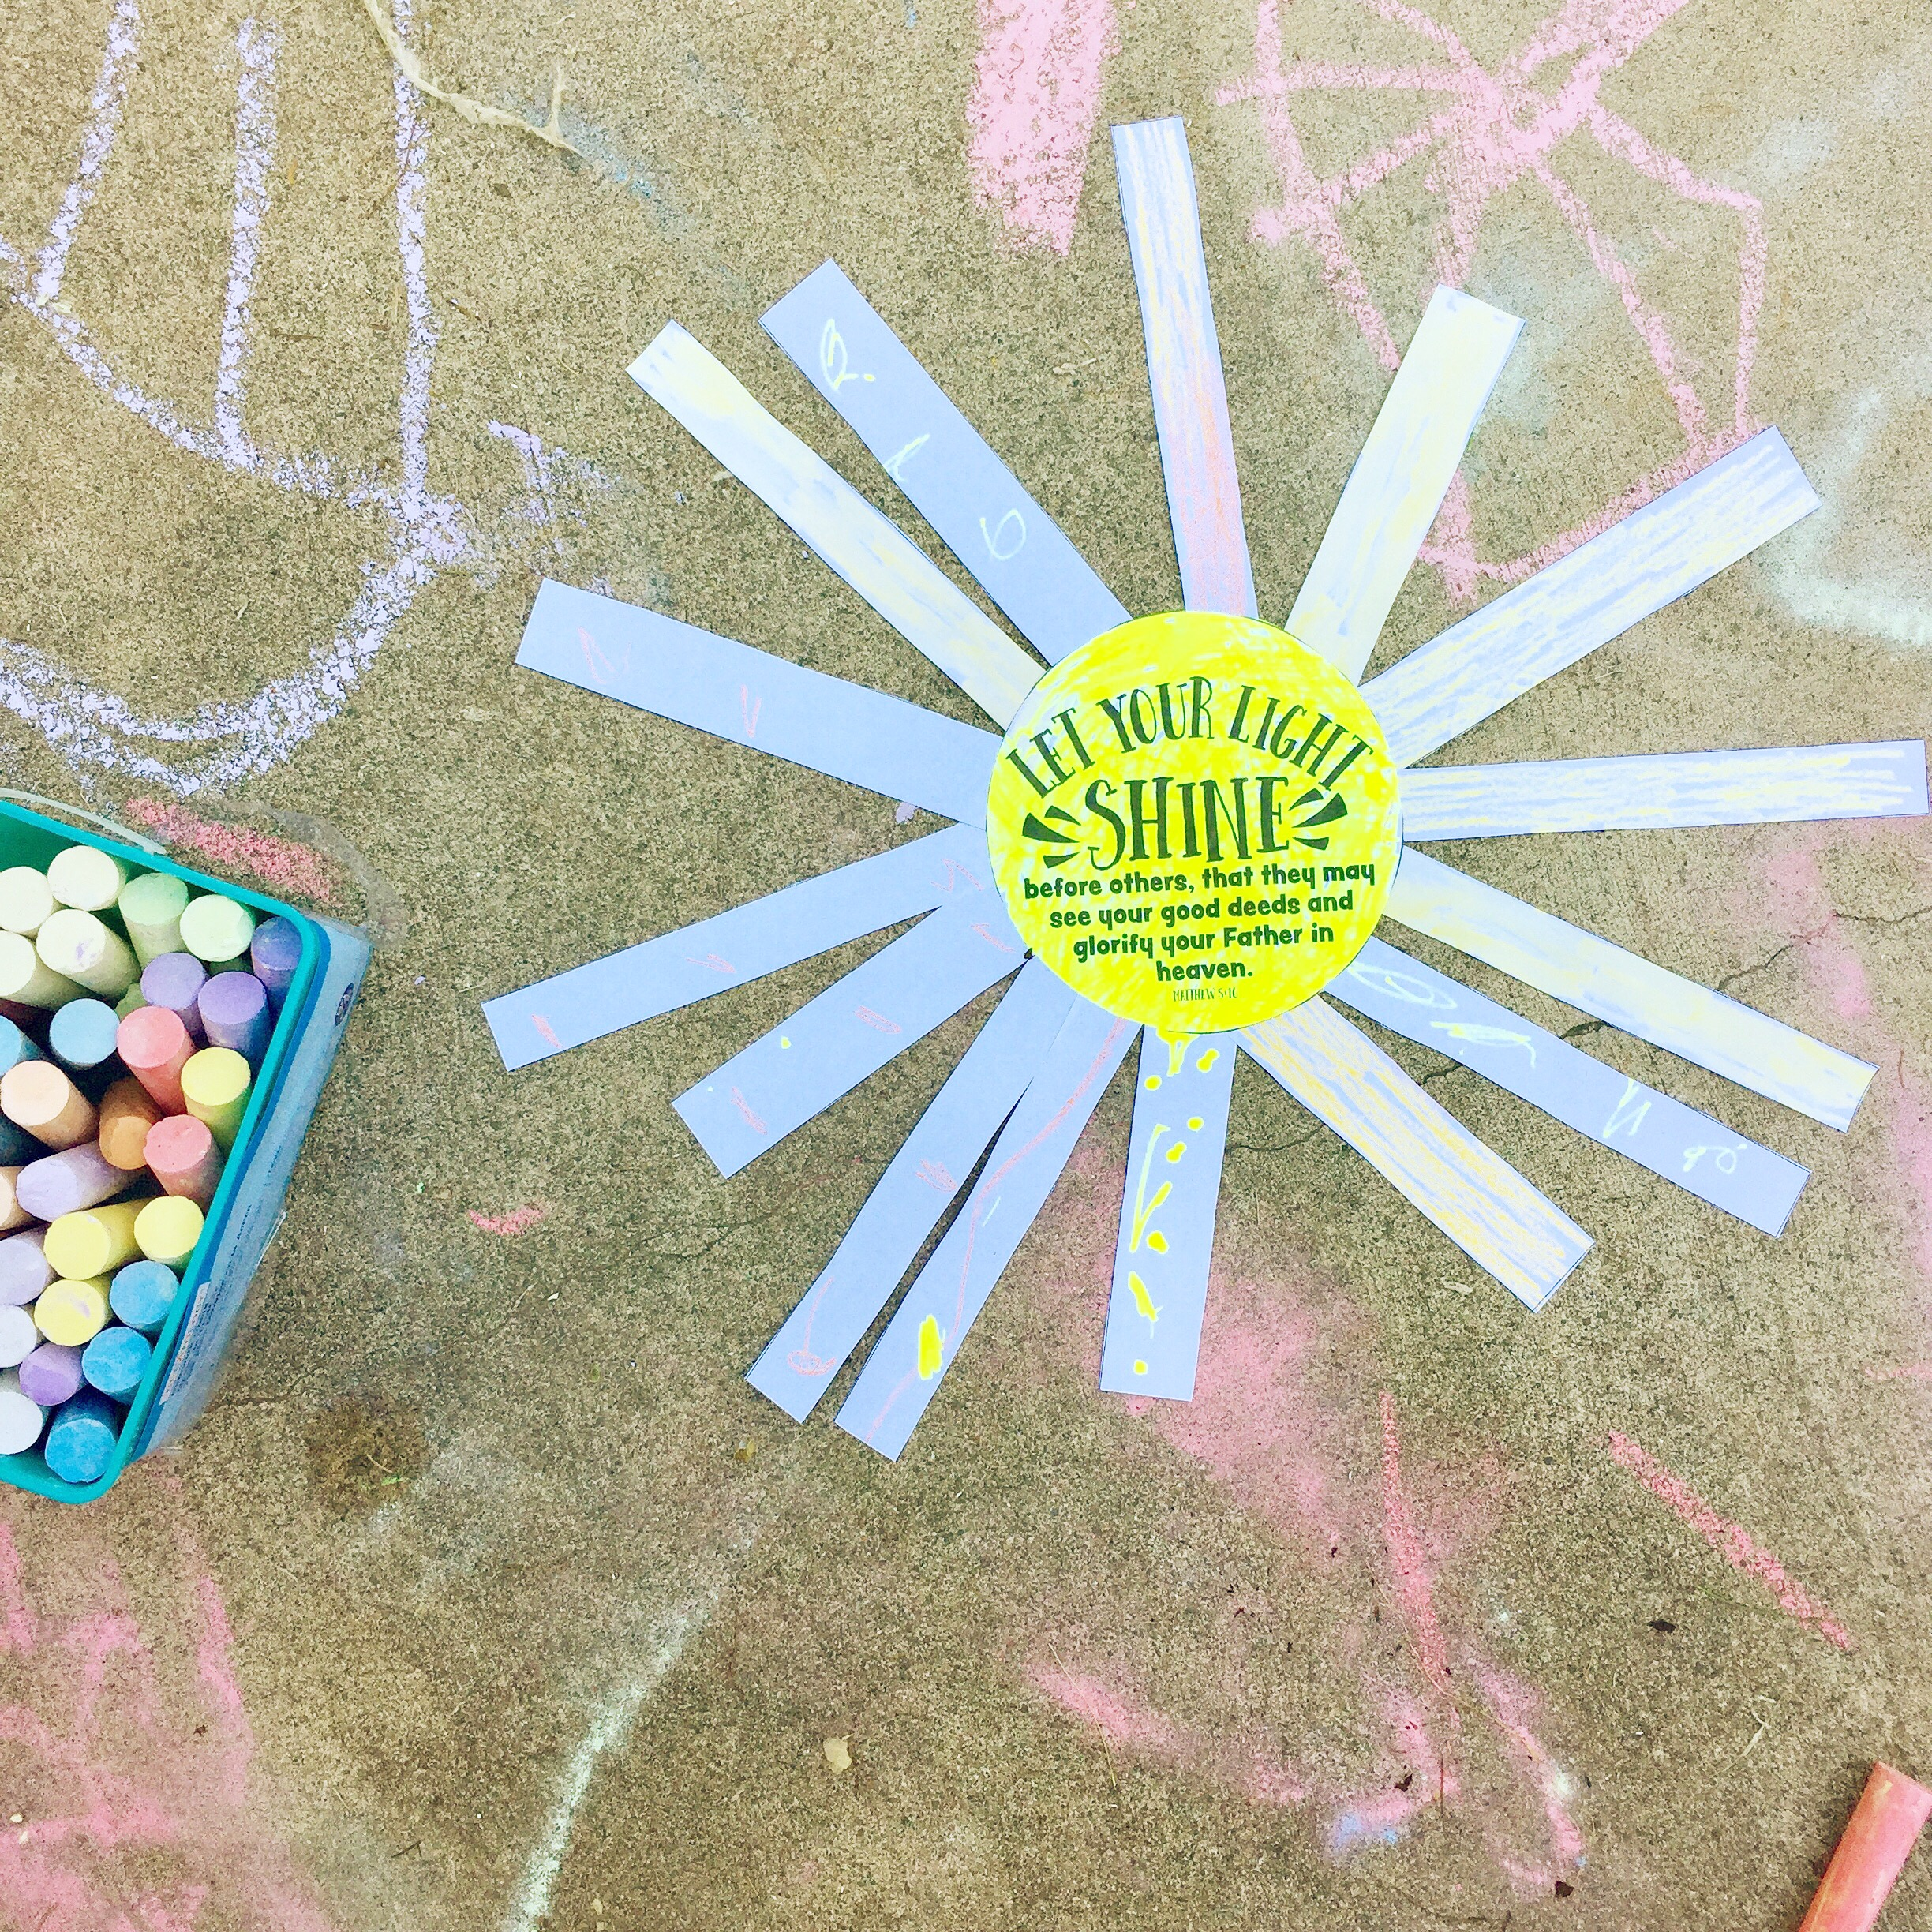 Let your light shine pRINTABLE - Make a paper sun printable craft